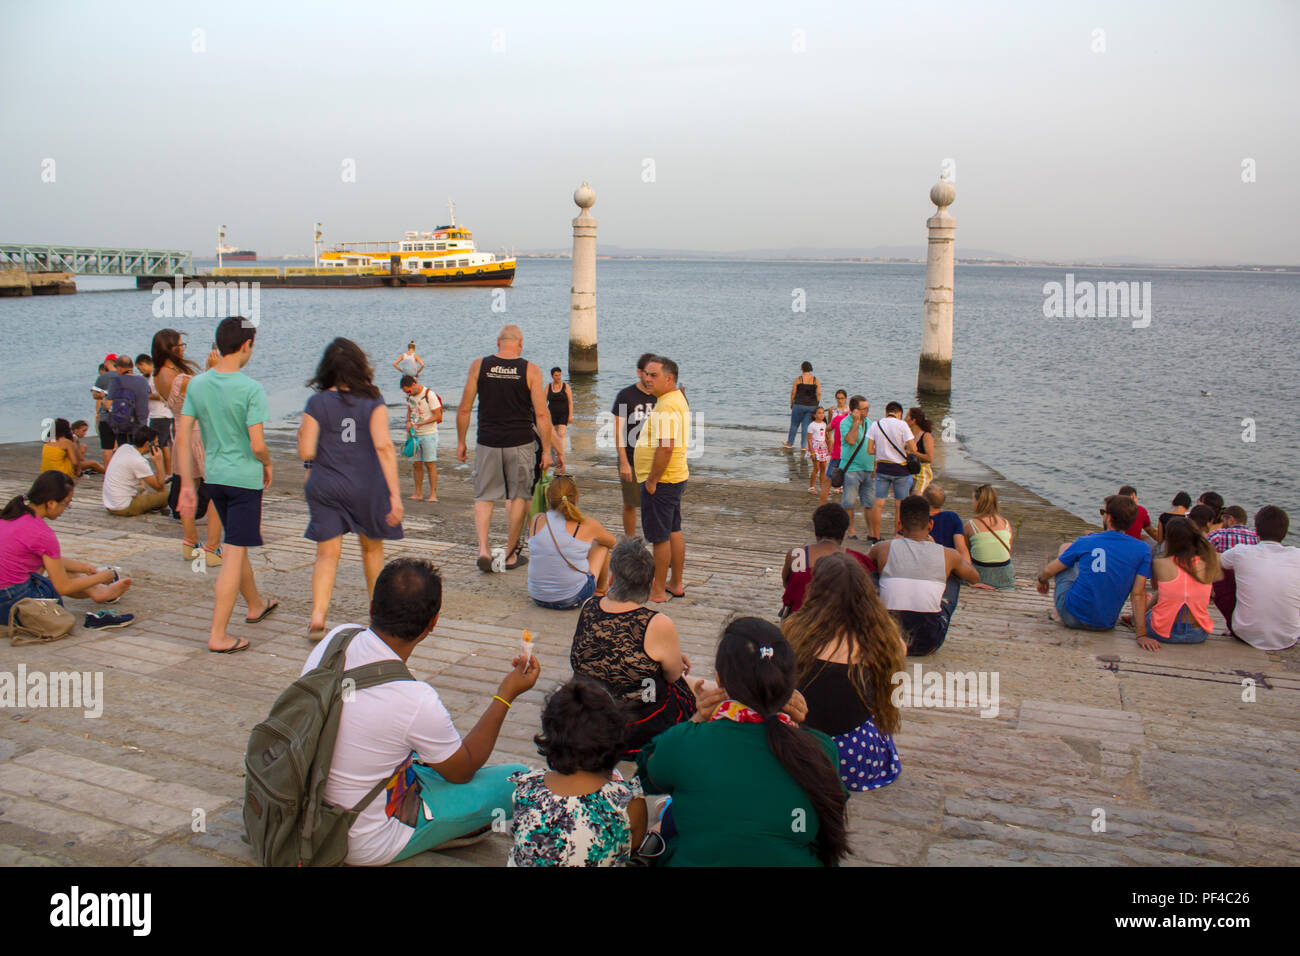 LISBON, PORTUGAL - August, CIRCA 2018: People are cooling at tagus river on one of the hottest summer days in Portugal - Stock Image